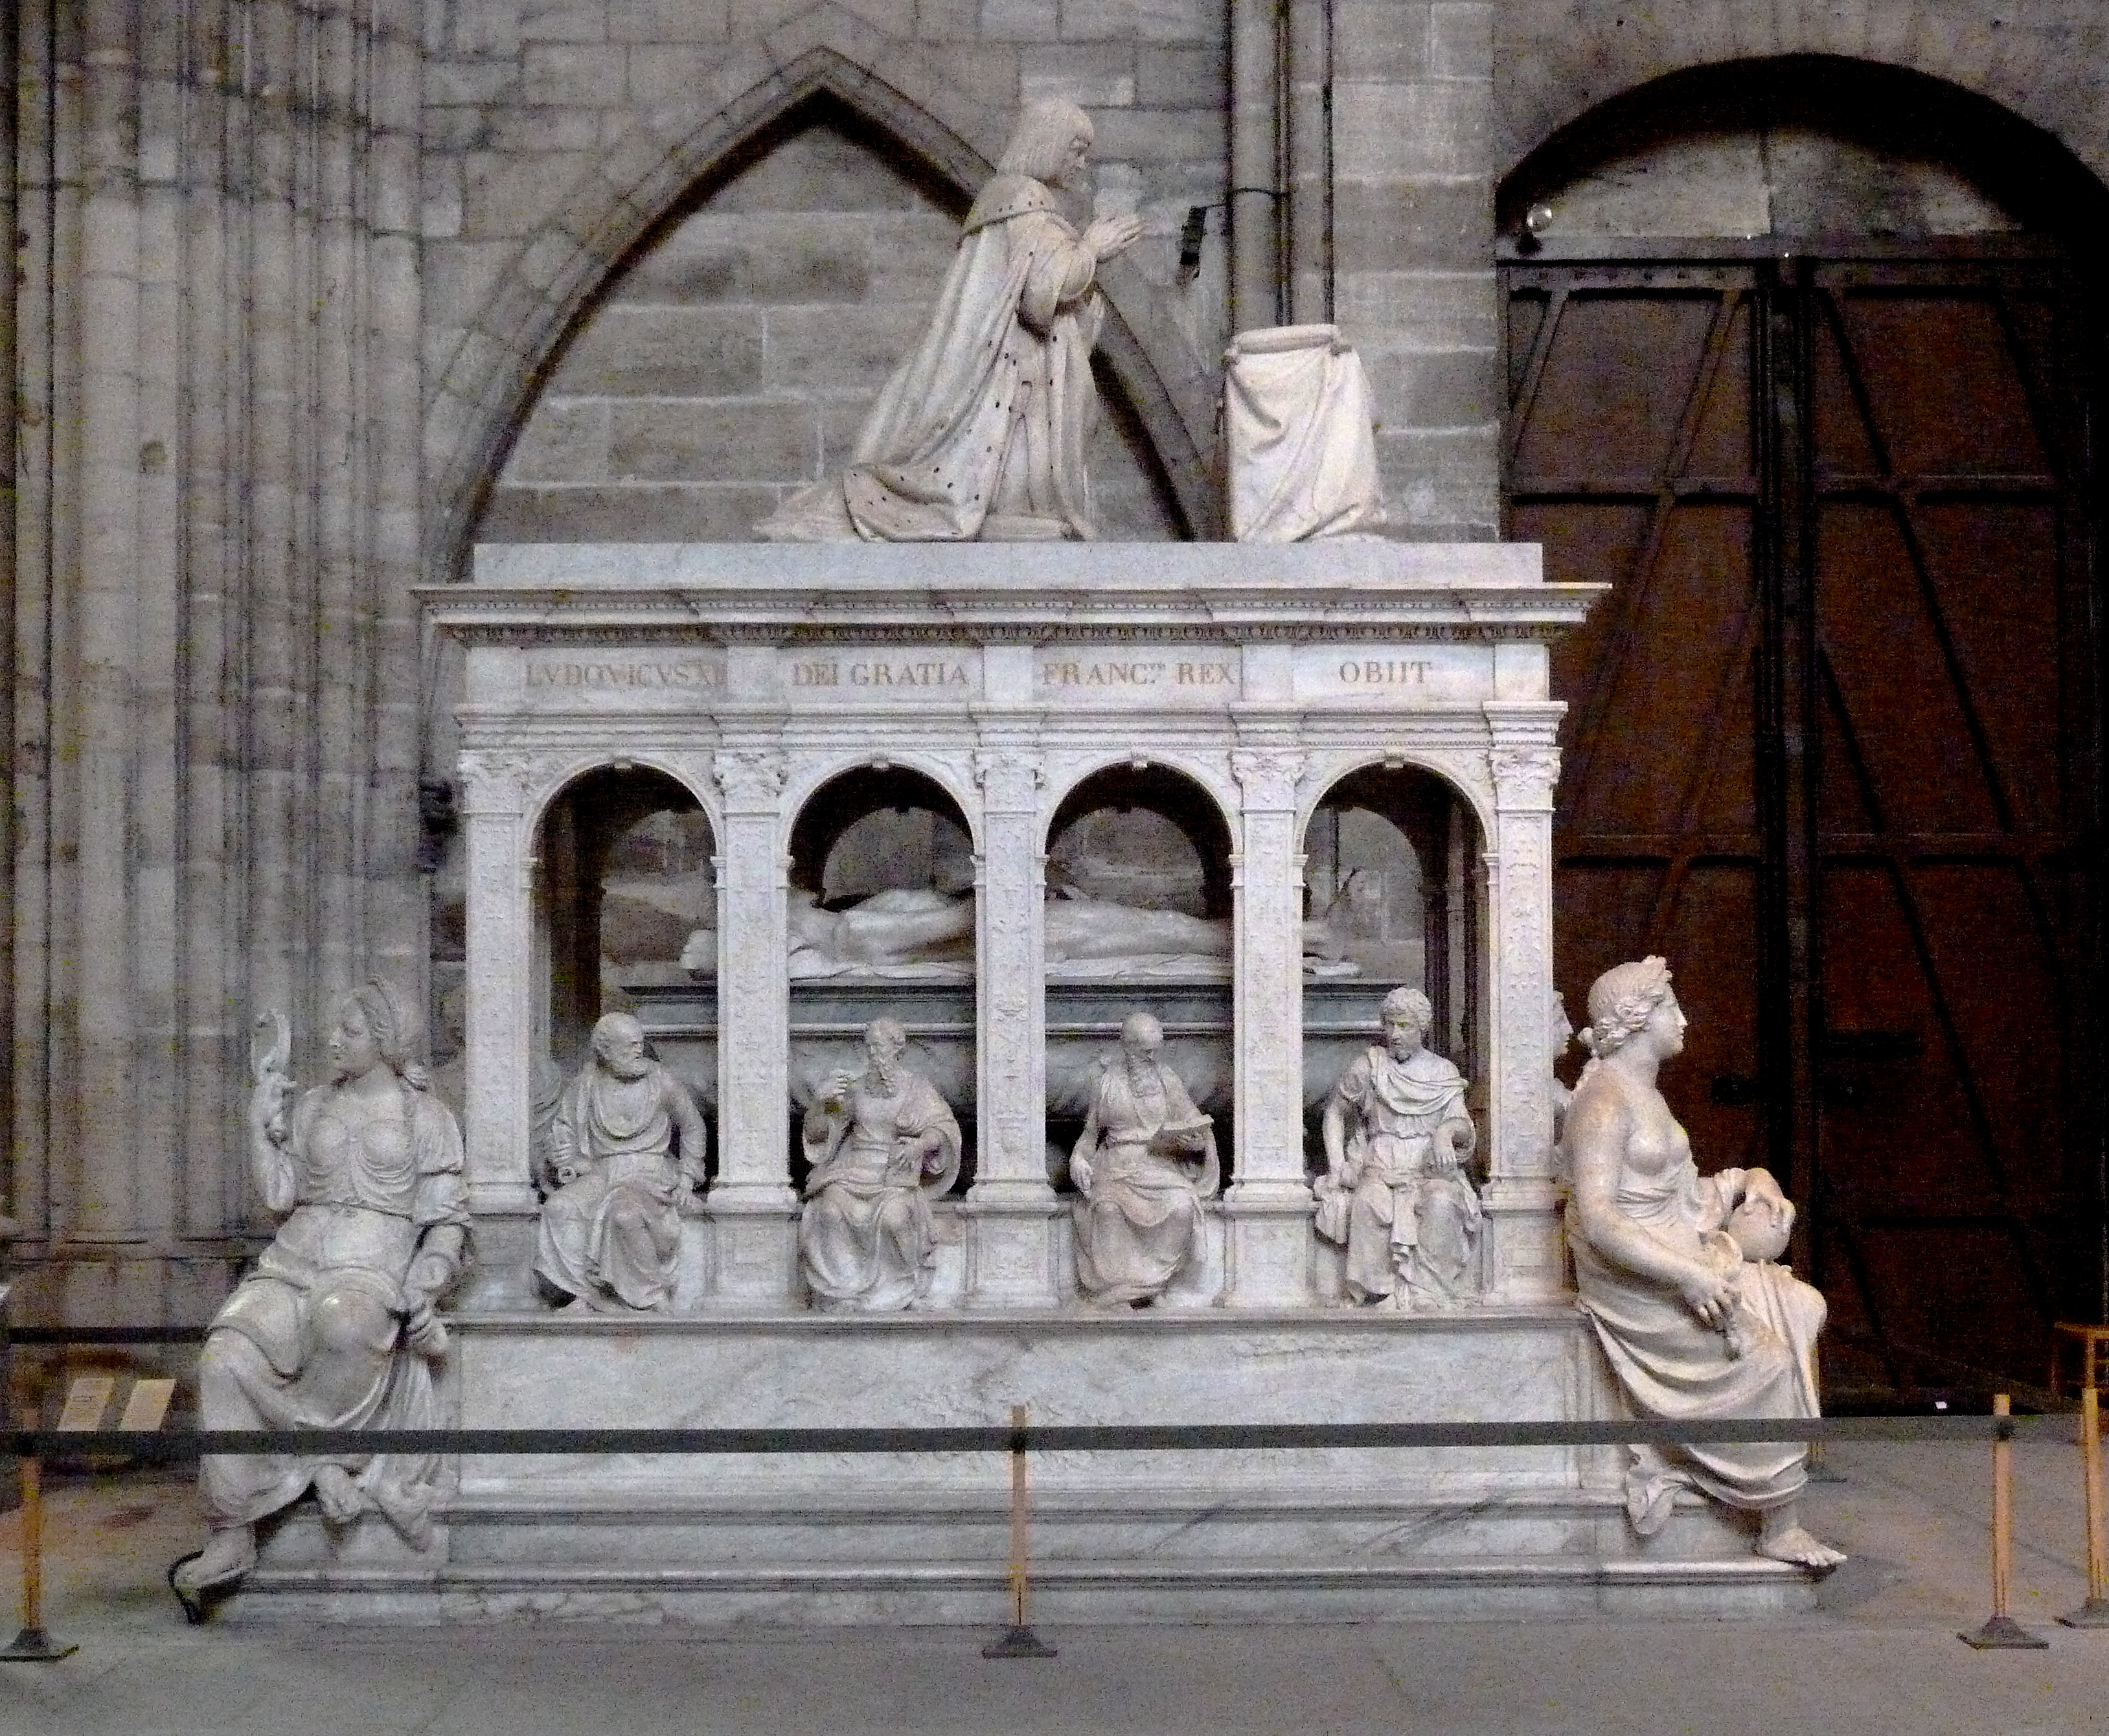 https://i0.wp.com/upload.wikimedia.org/wikipedia/commons/0/09/Louis_XII_et_Anne_de_Bretagne_St_Denis.jpg